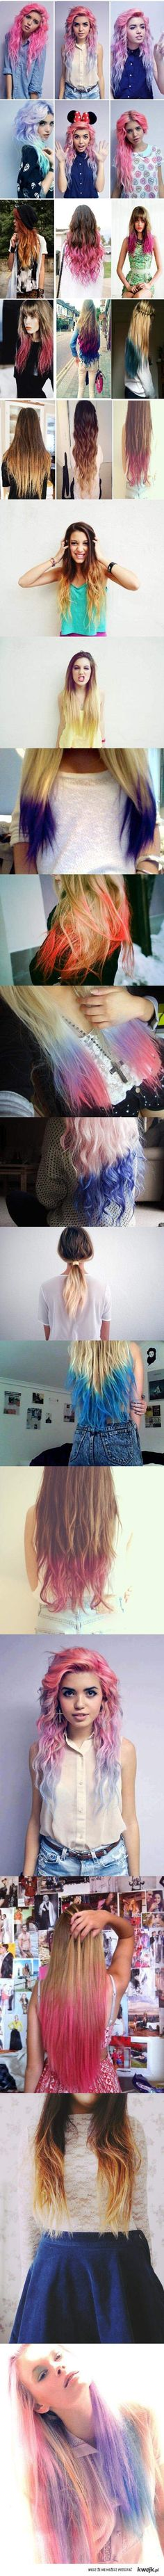 Ombre hair styles LOVE